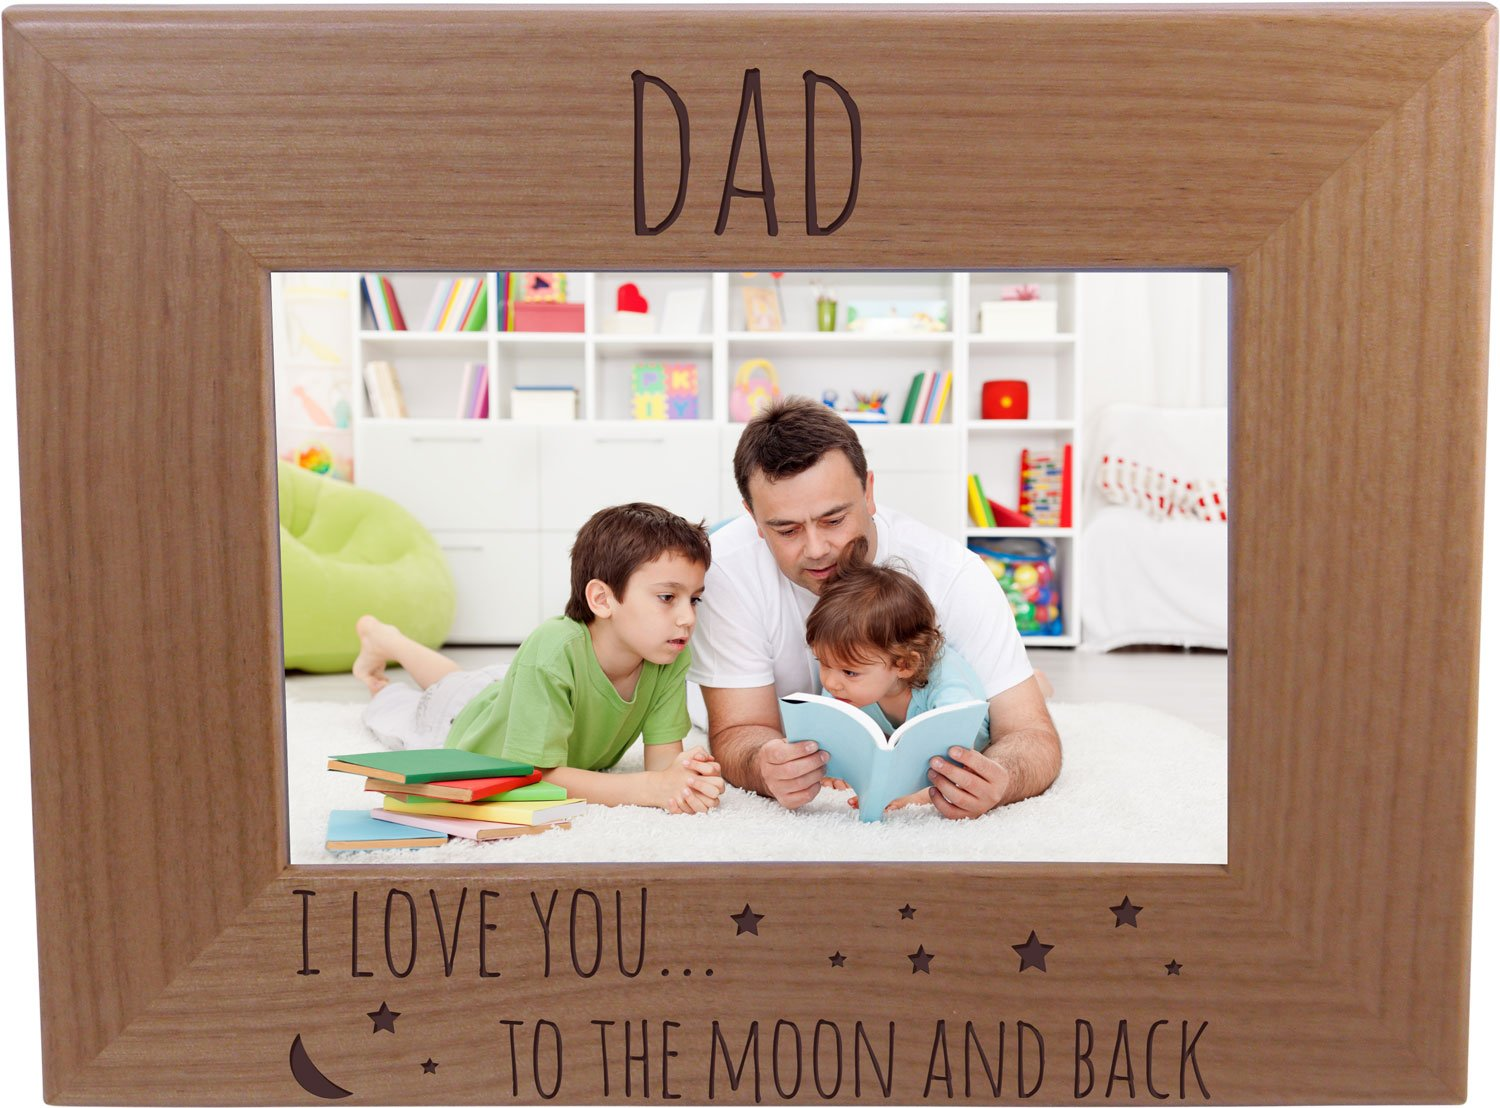 Amazoncom Dad I Love You To The Moon And Back 4x6 Inch Wood